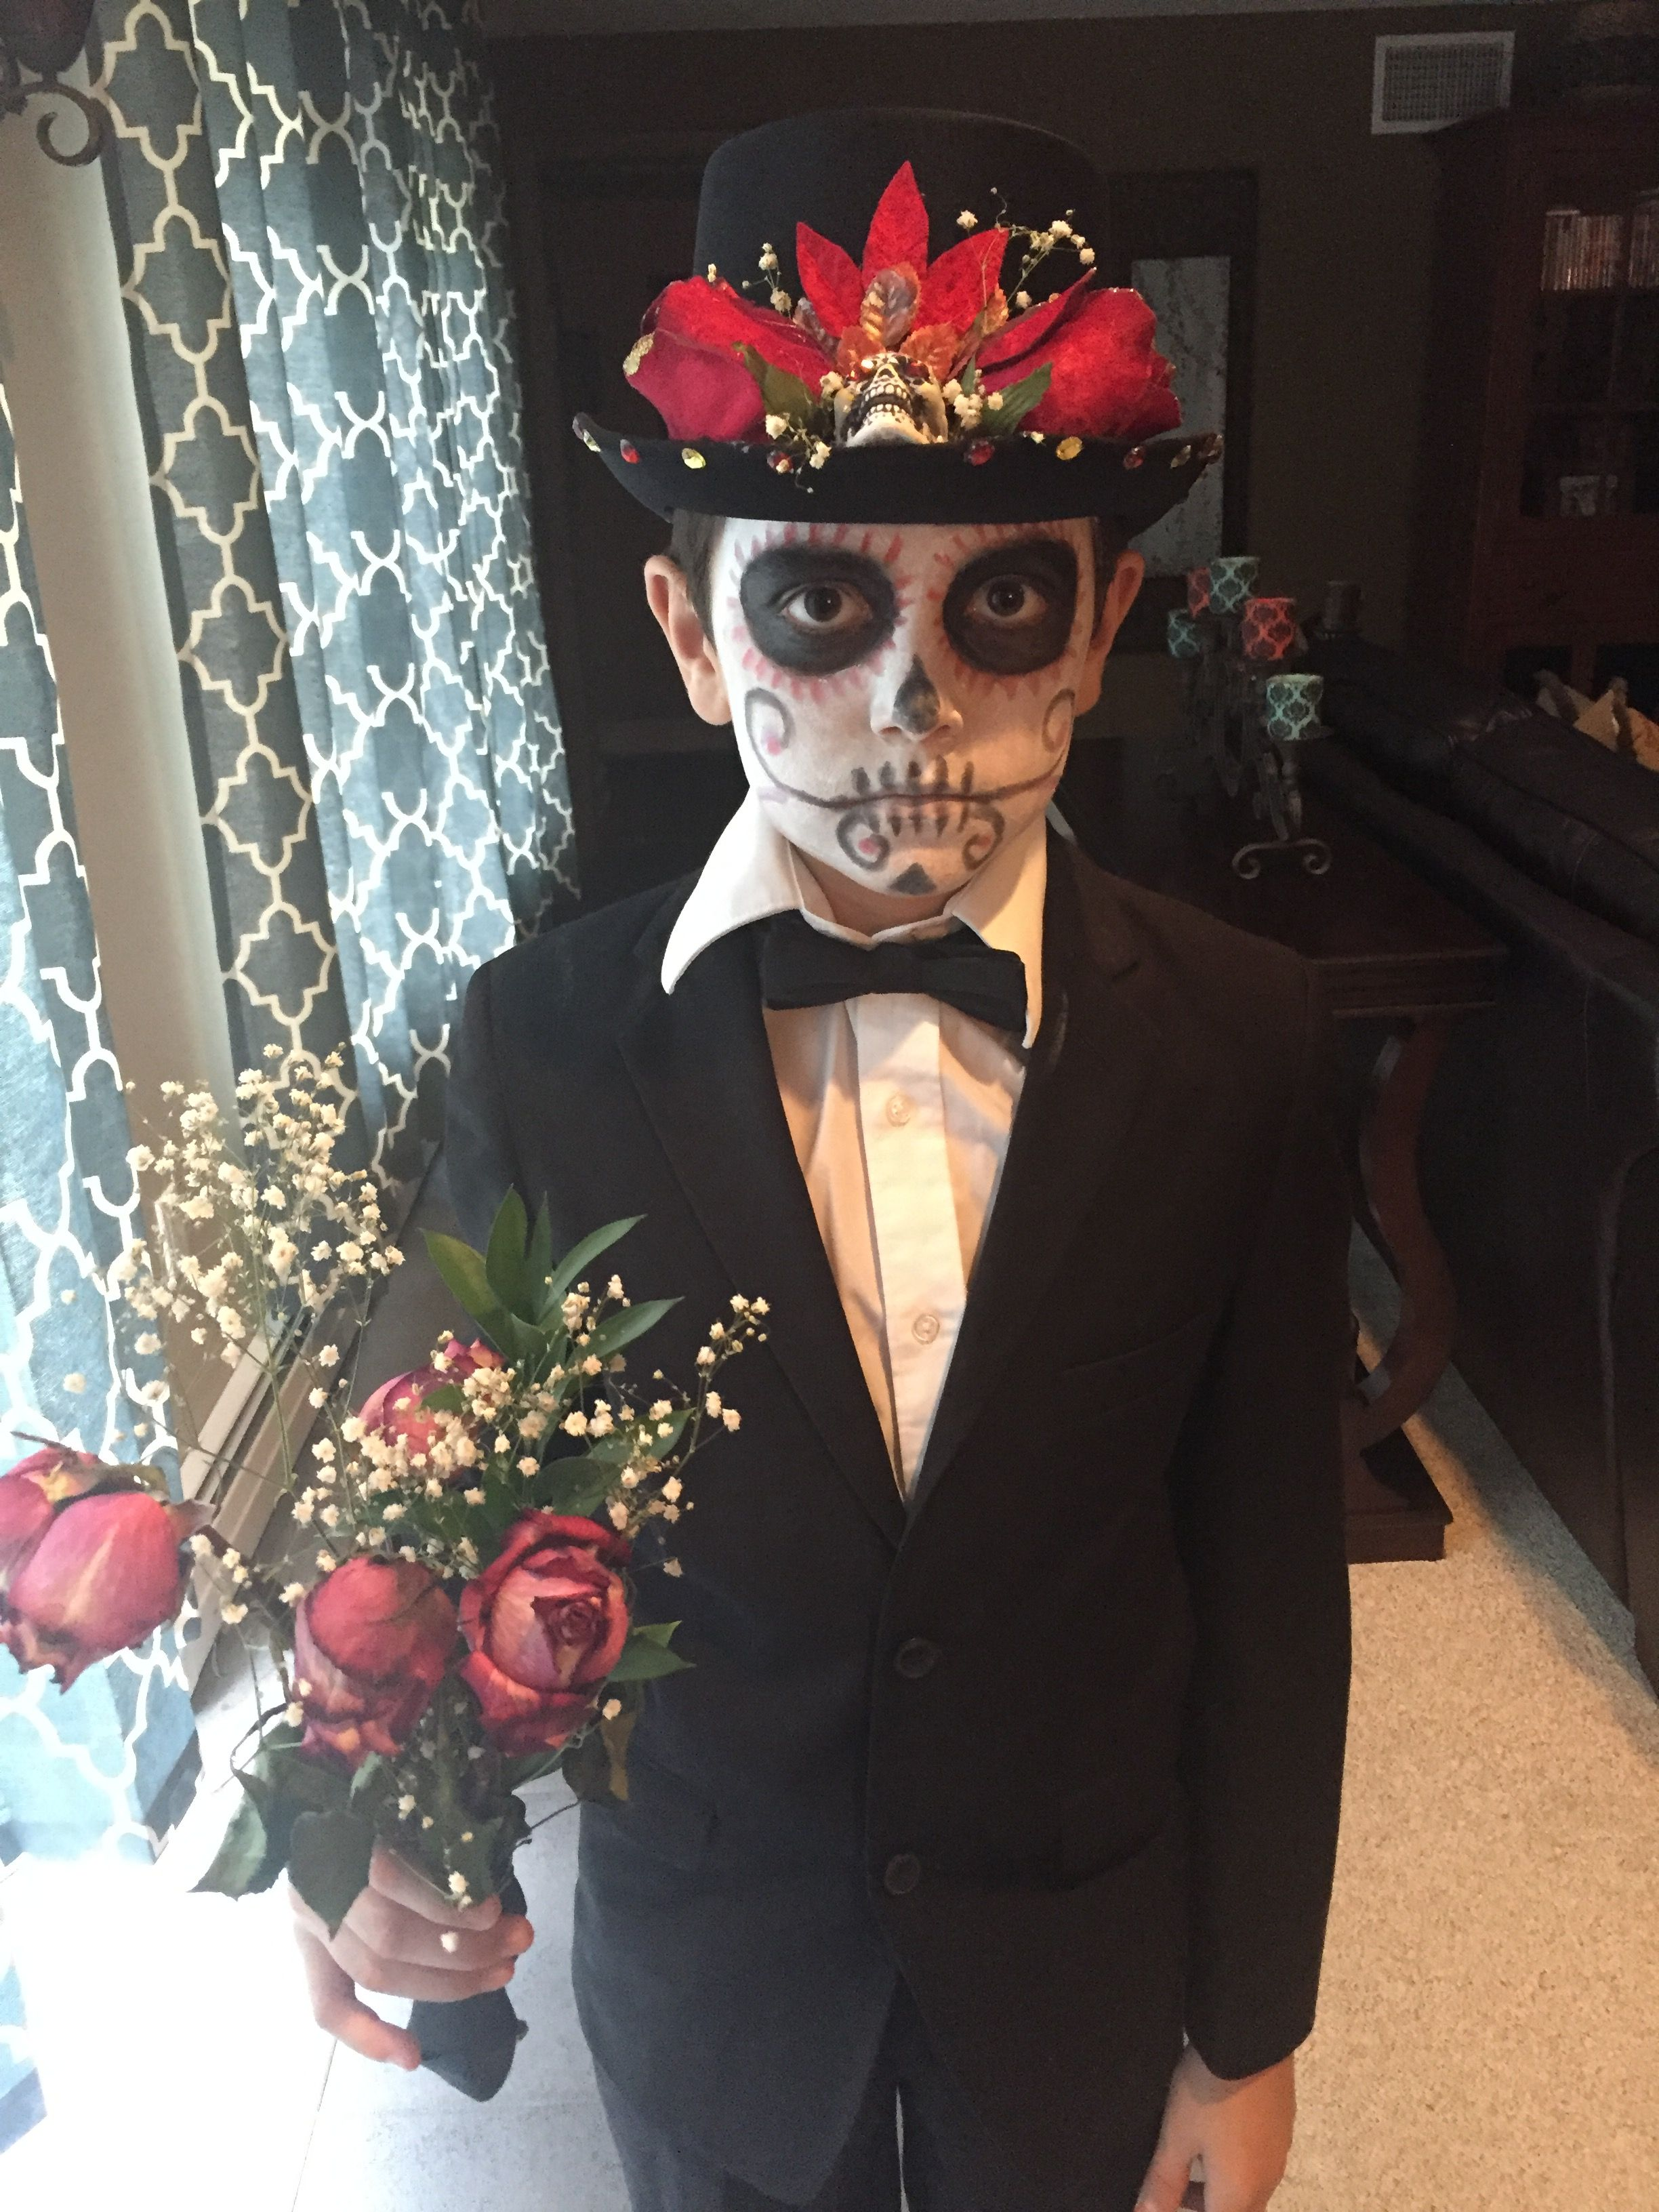 day of the dead boy costume and makeup idea for halloween #dayofdead